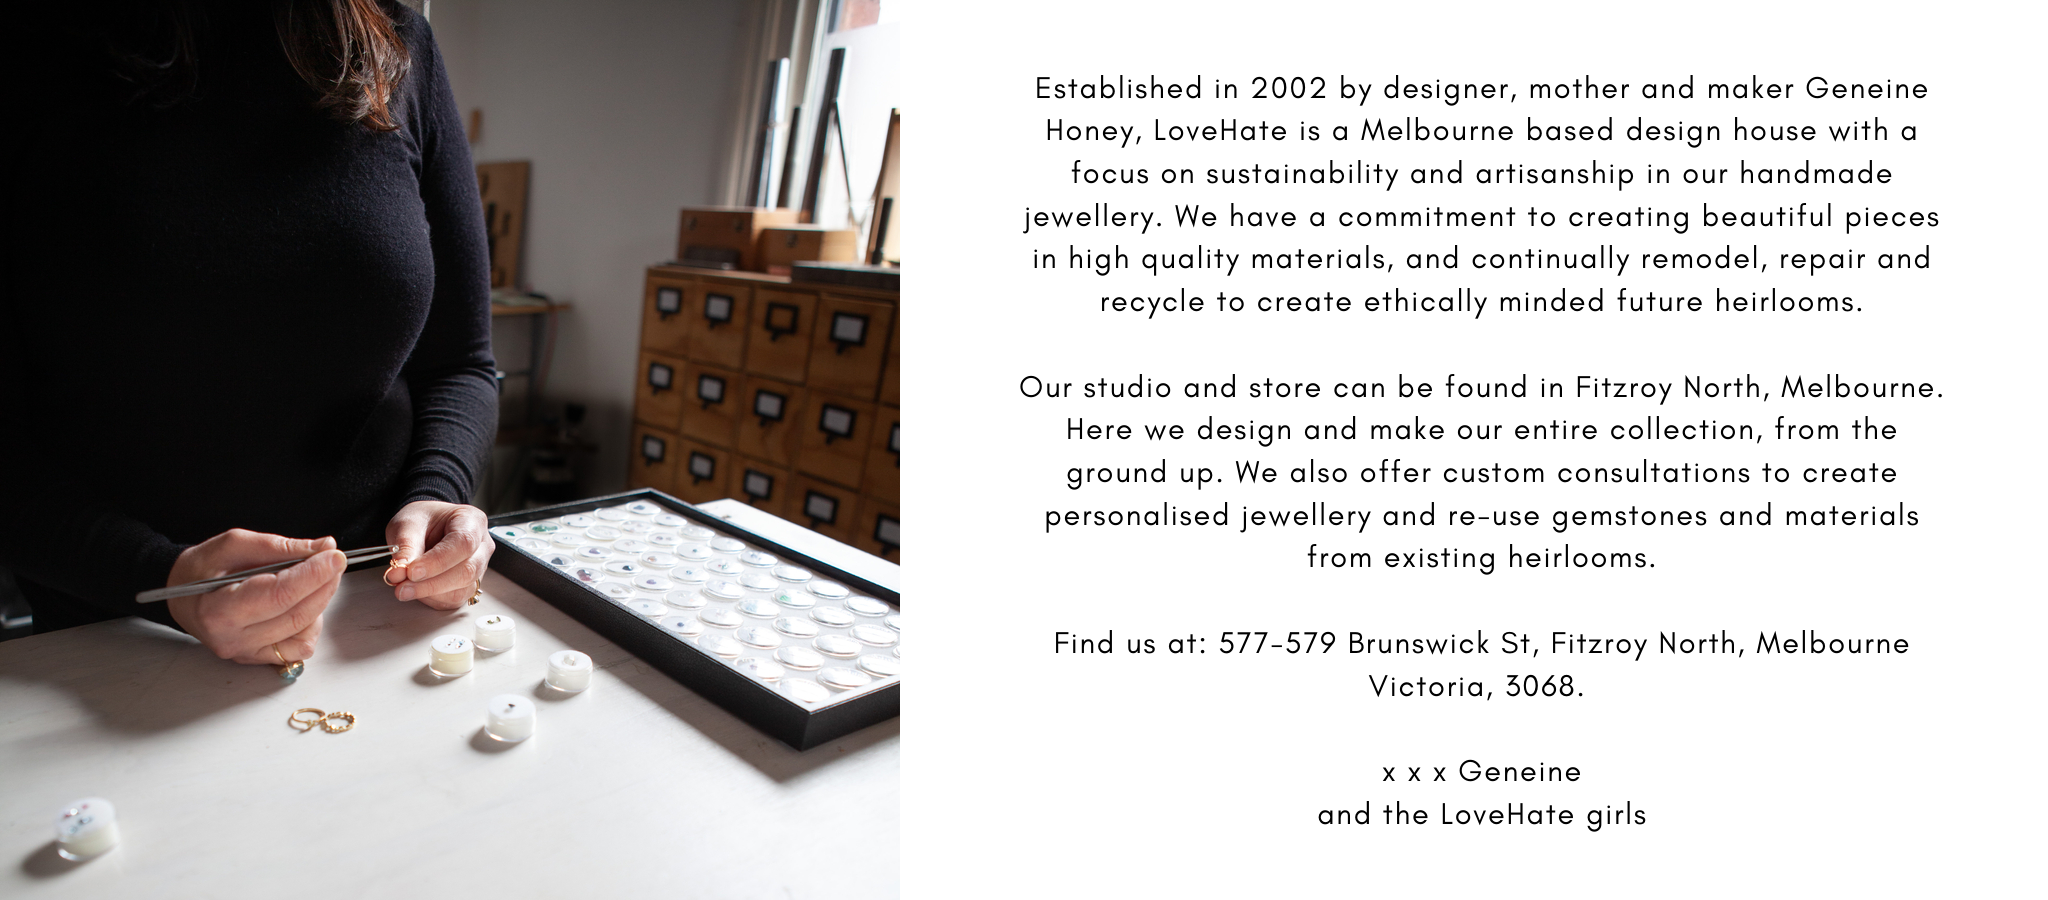 Established in 2002 by designer, mother and maker Geneine Honey, Love Hate is a Melbourne based design house with a focus on sustainability and artisanship in our handmade jewellery. We have a commitment to creating beautiful pieces in high quality materials, and continually remodel, repair and recycle to create ethically minded future heirlooms.